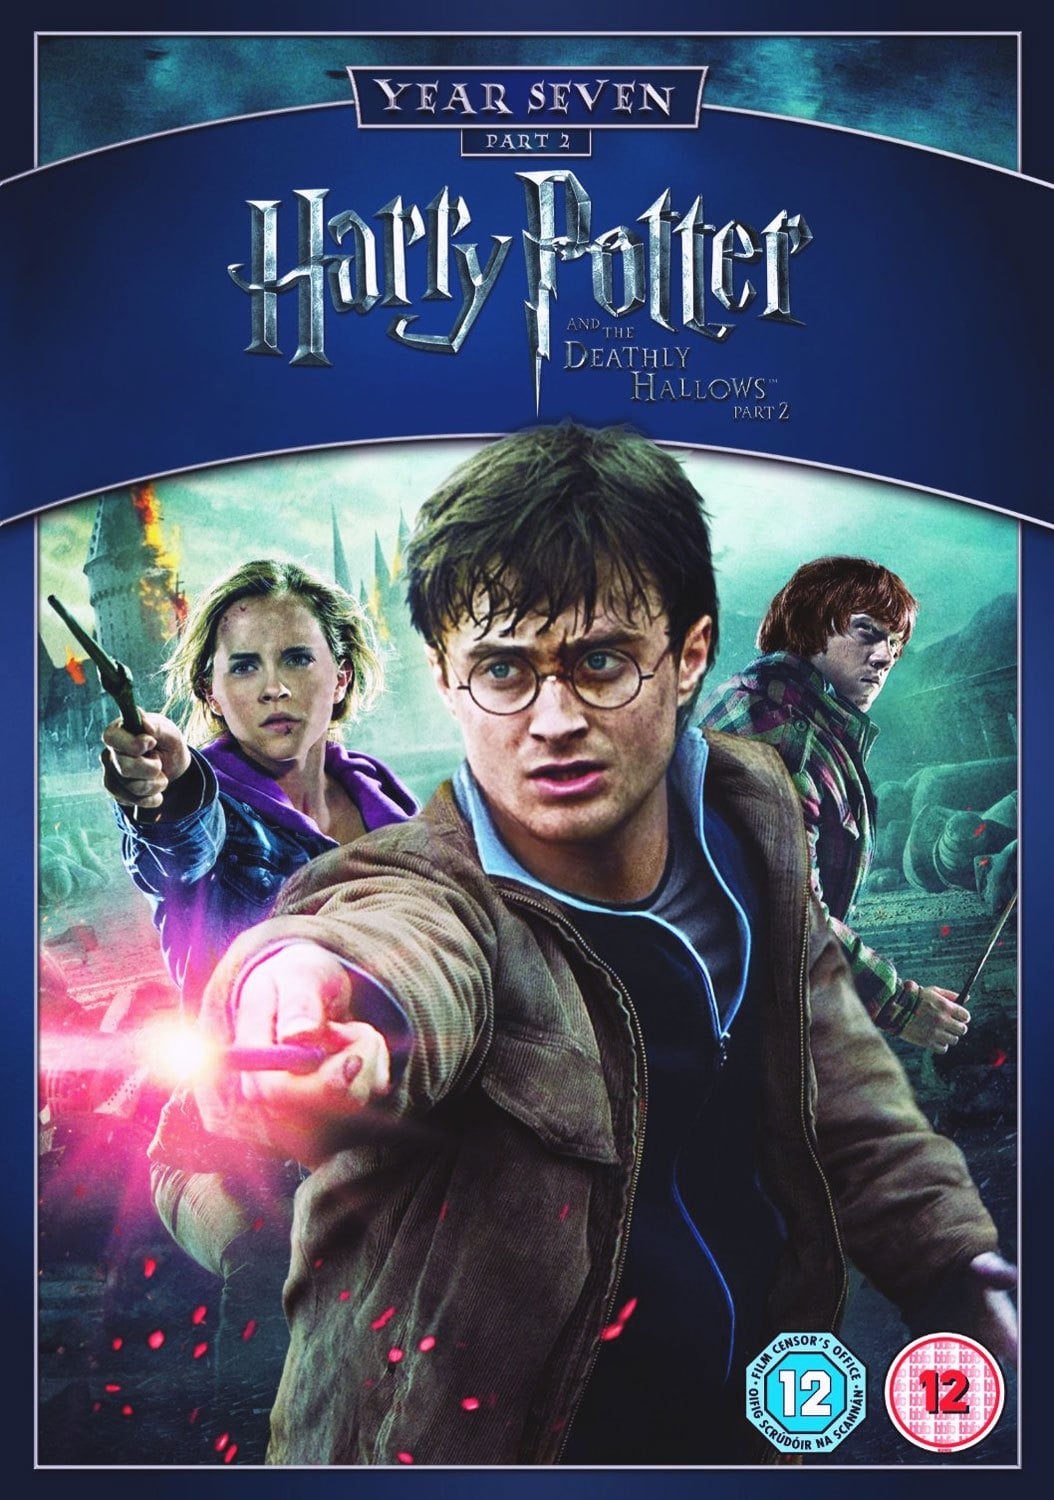 Harry Potter and the Deathly Hallows Part 2 DVD Cover